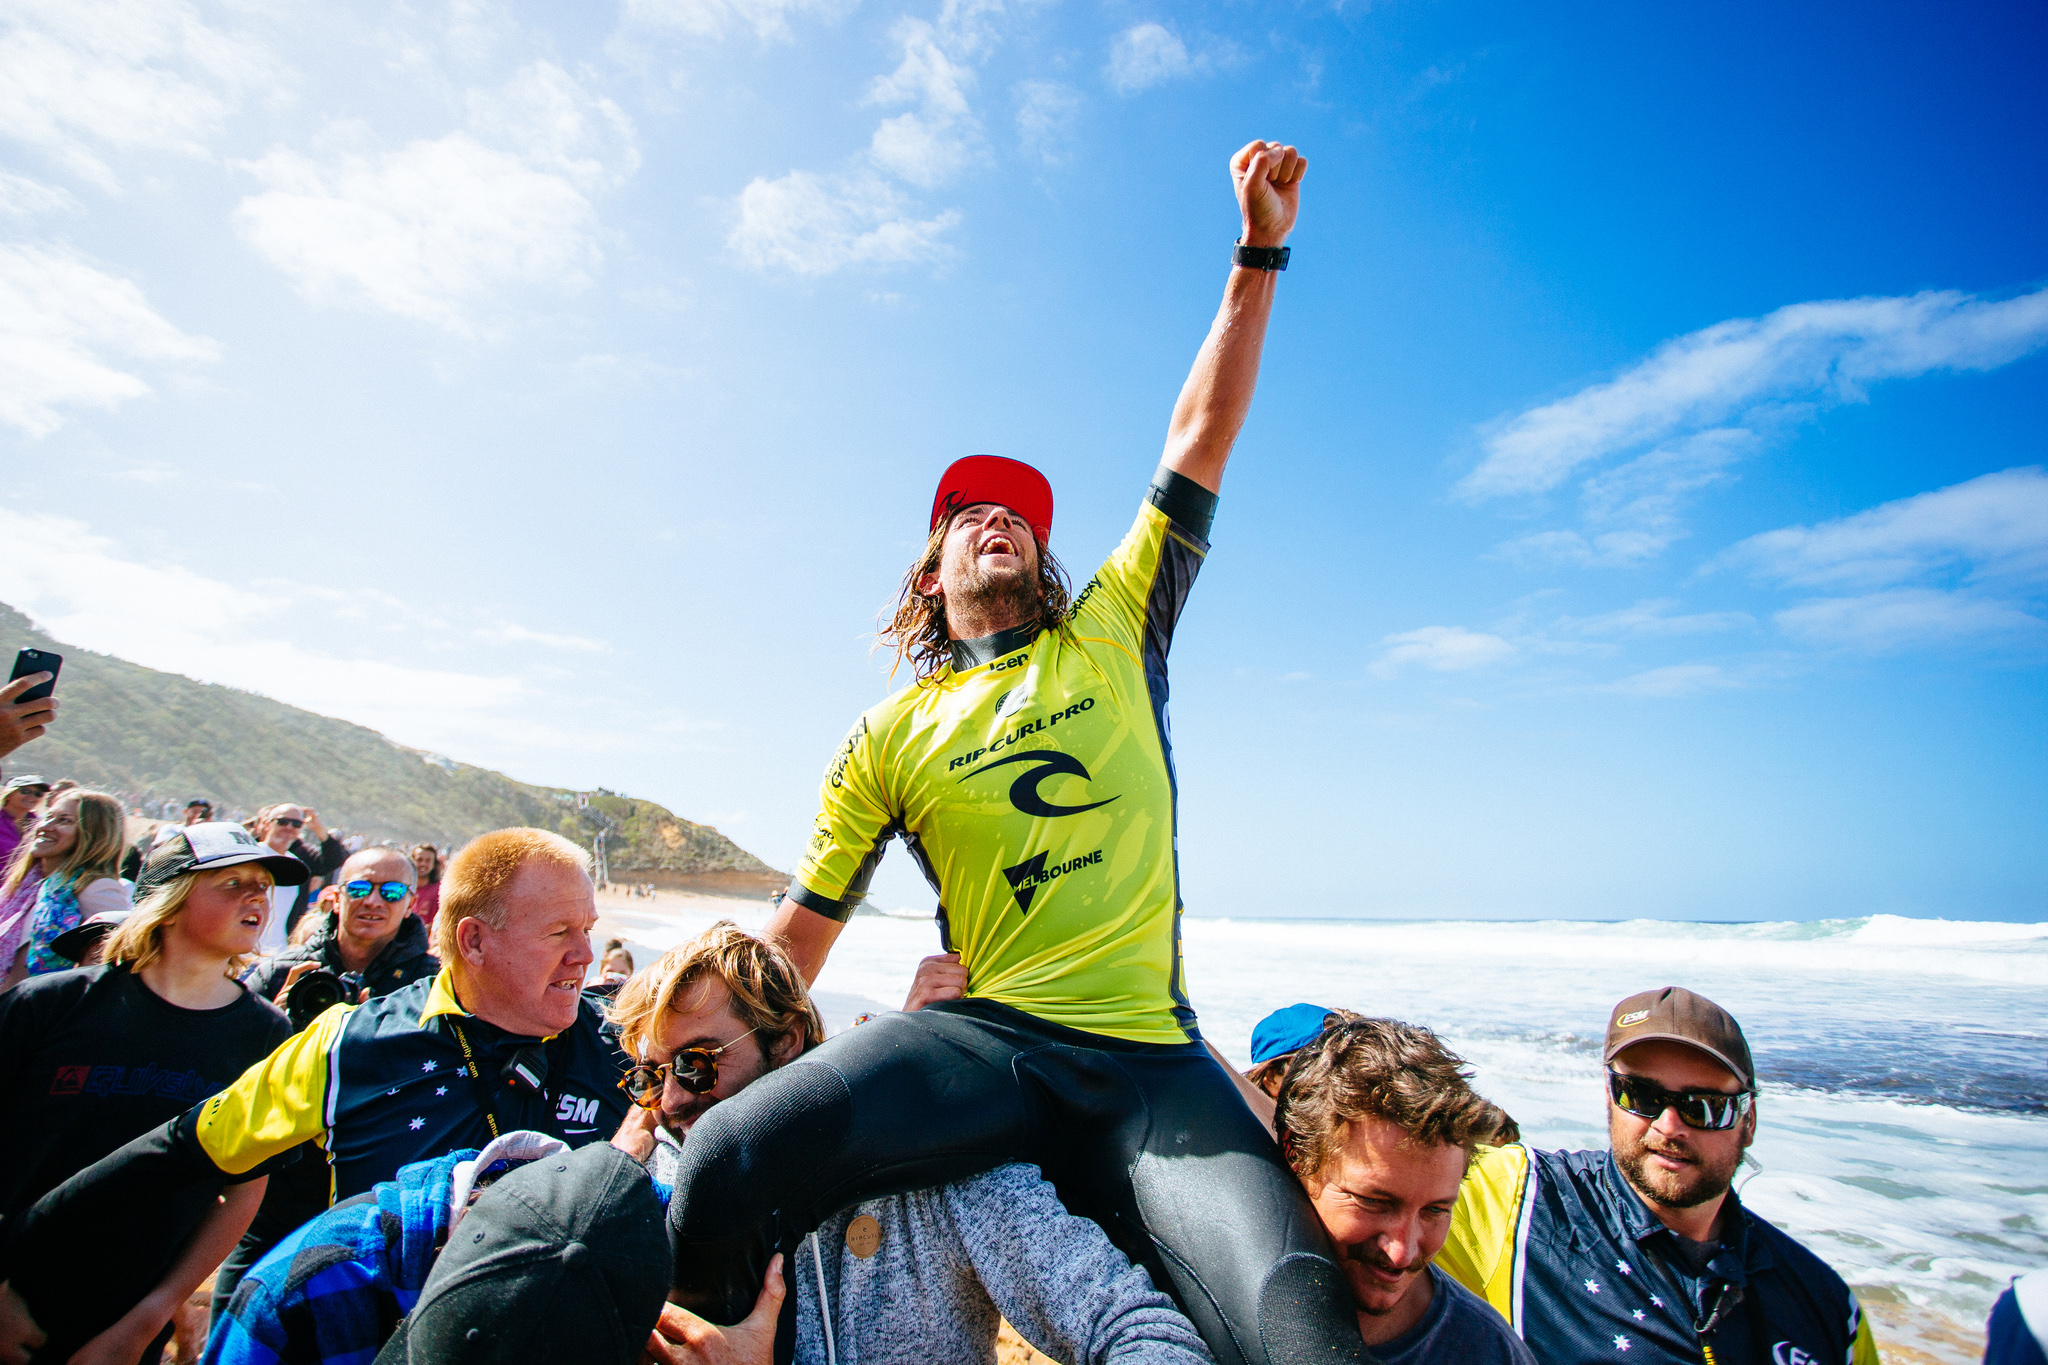 Matt Wilkinson of Australia (pictured) celebrated his victory at the Rip Curl Pro Bells Beach on Sunday April 3, 2016.